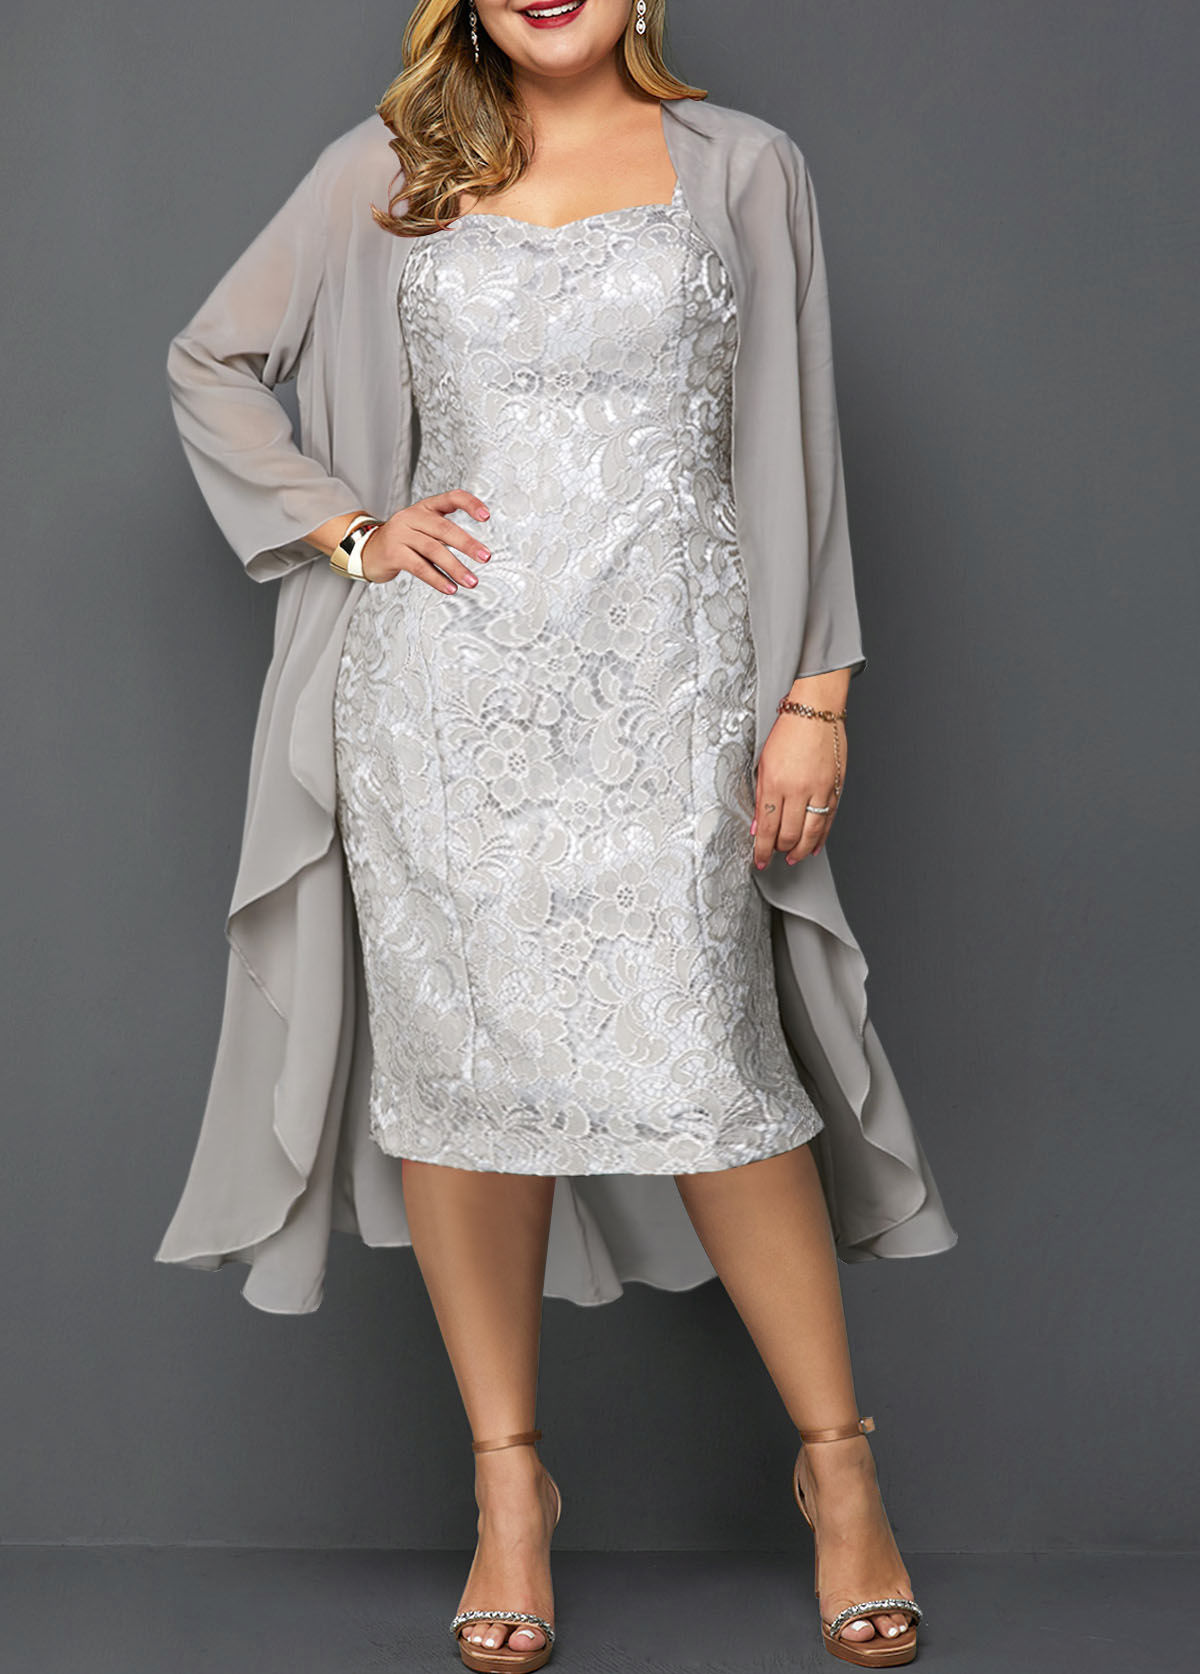 Plus Size Chiffon Cardigan and Sleeveless Lace Dress